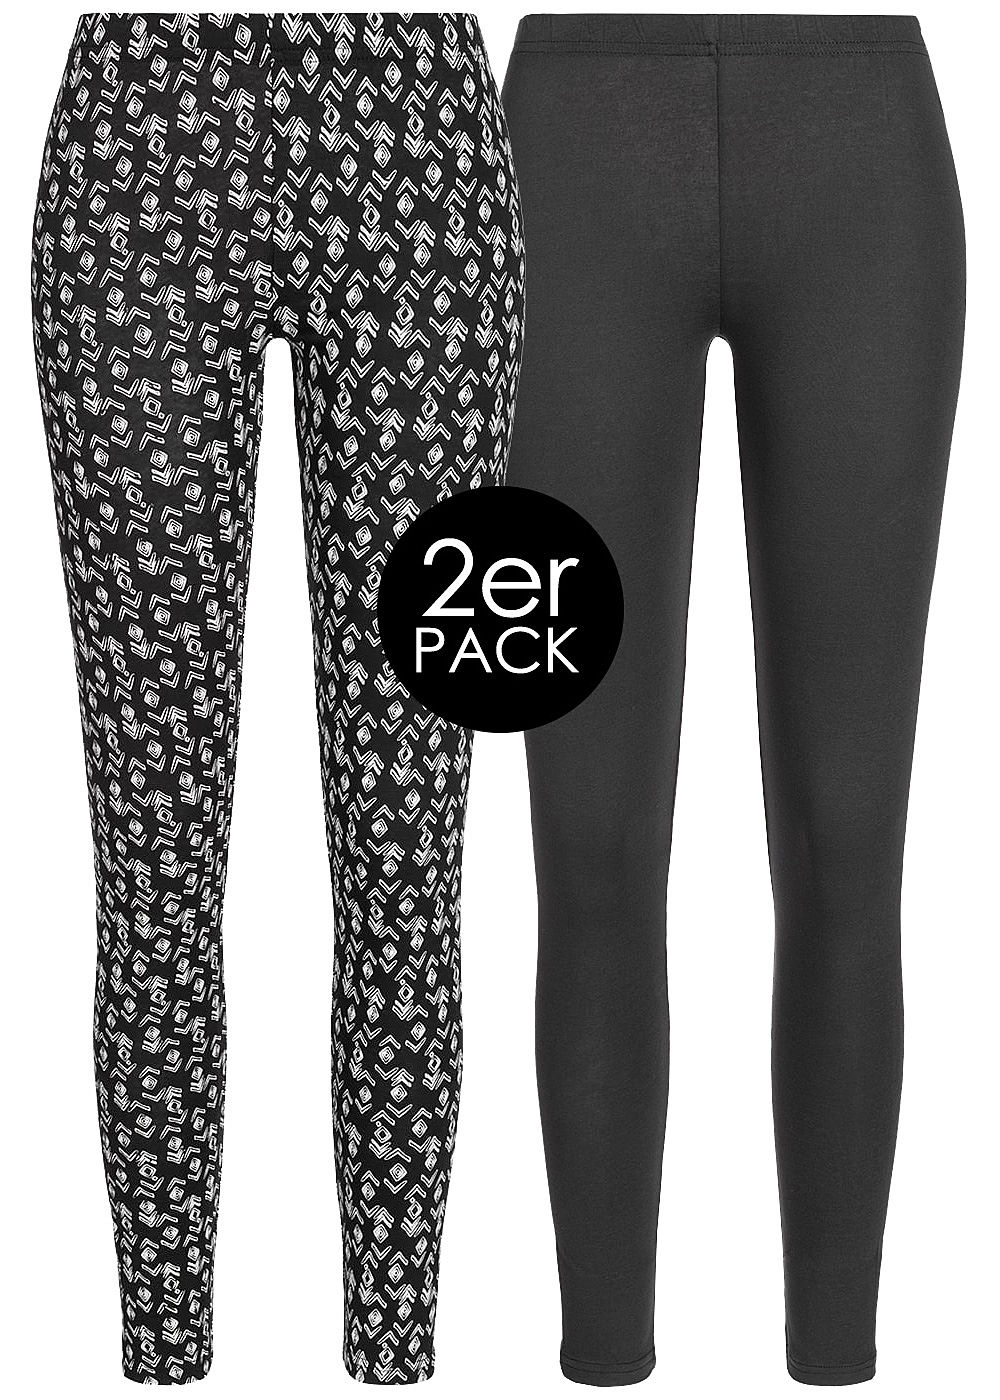 Seventyseven LifestyleDP Damen 2er-Set Leggings schwarz weiss - Art.-Nr.: 19048020